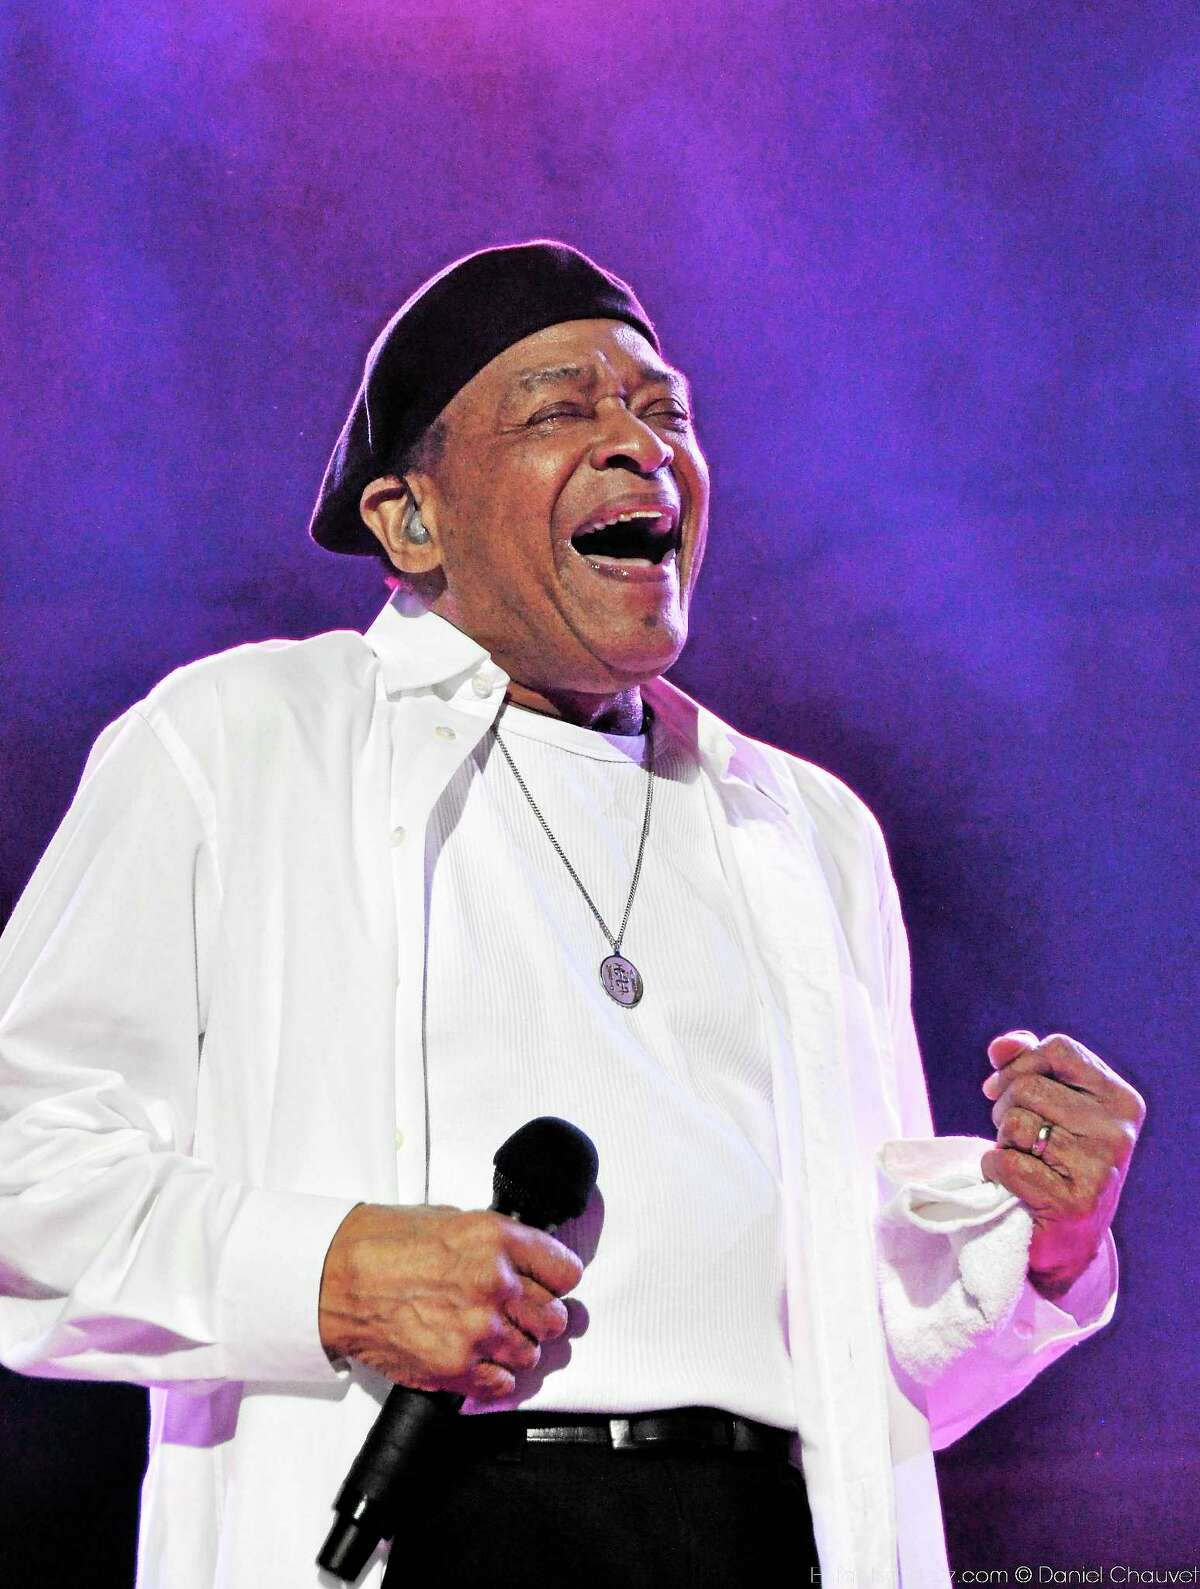 Al Jarreau hits a high note.